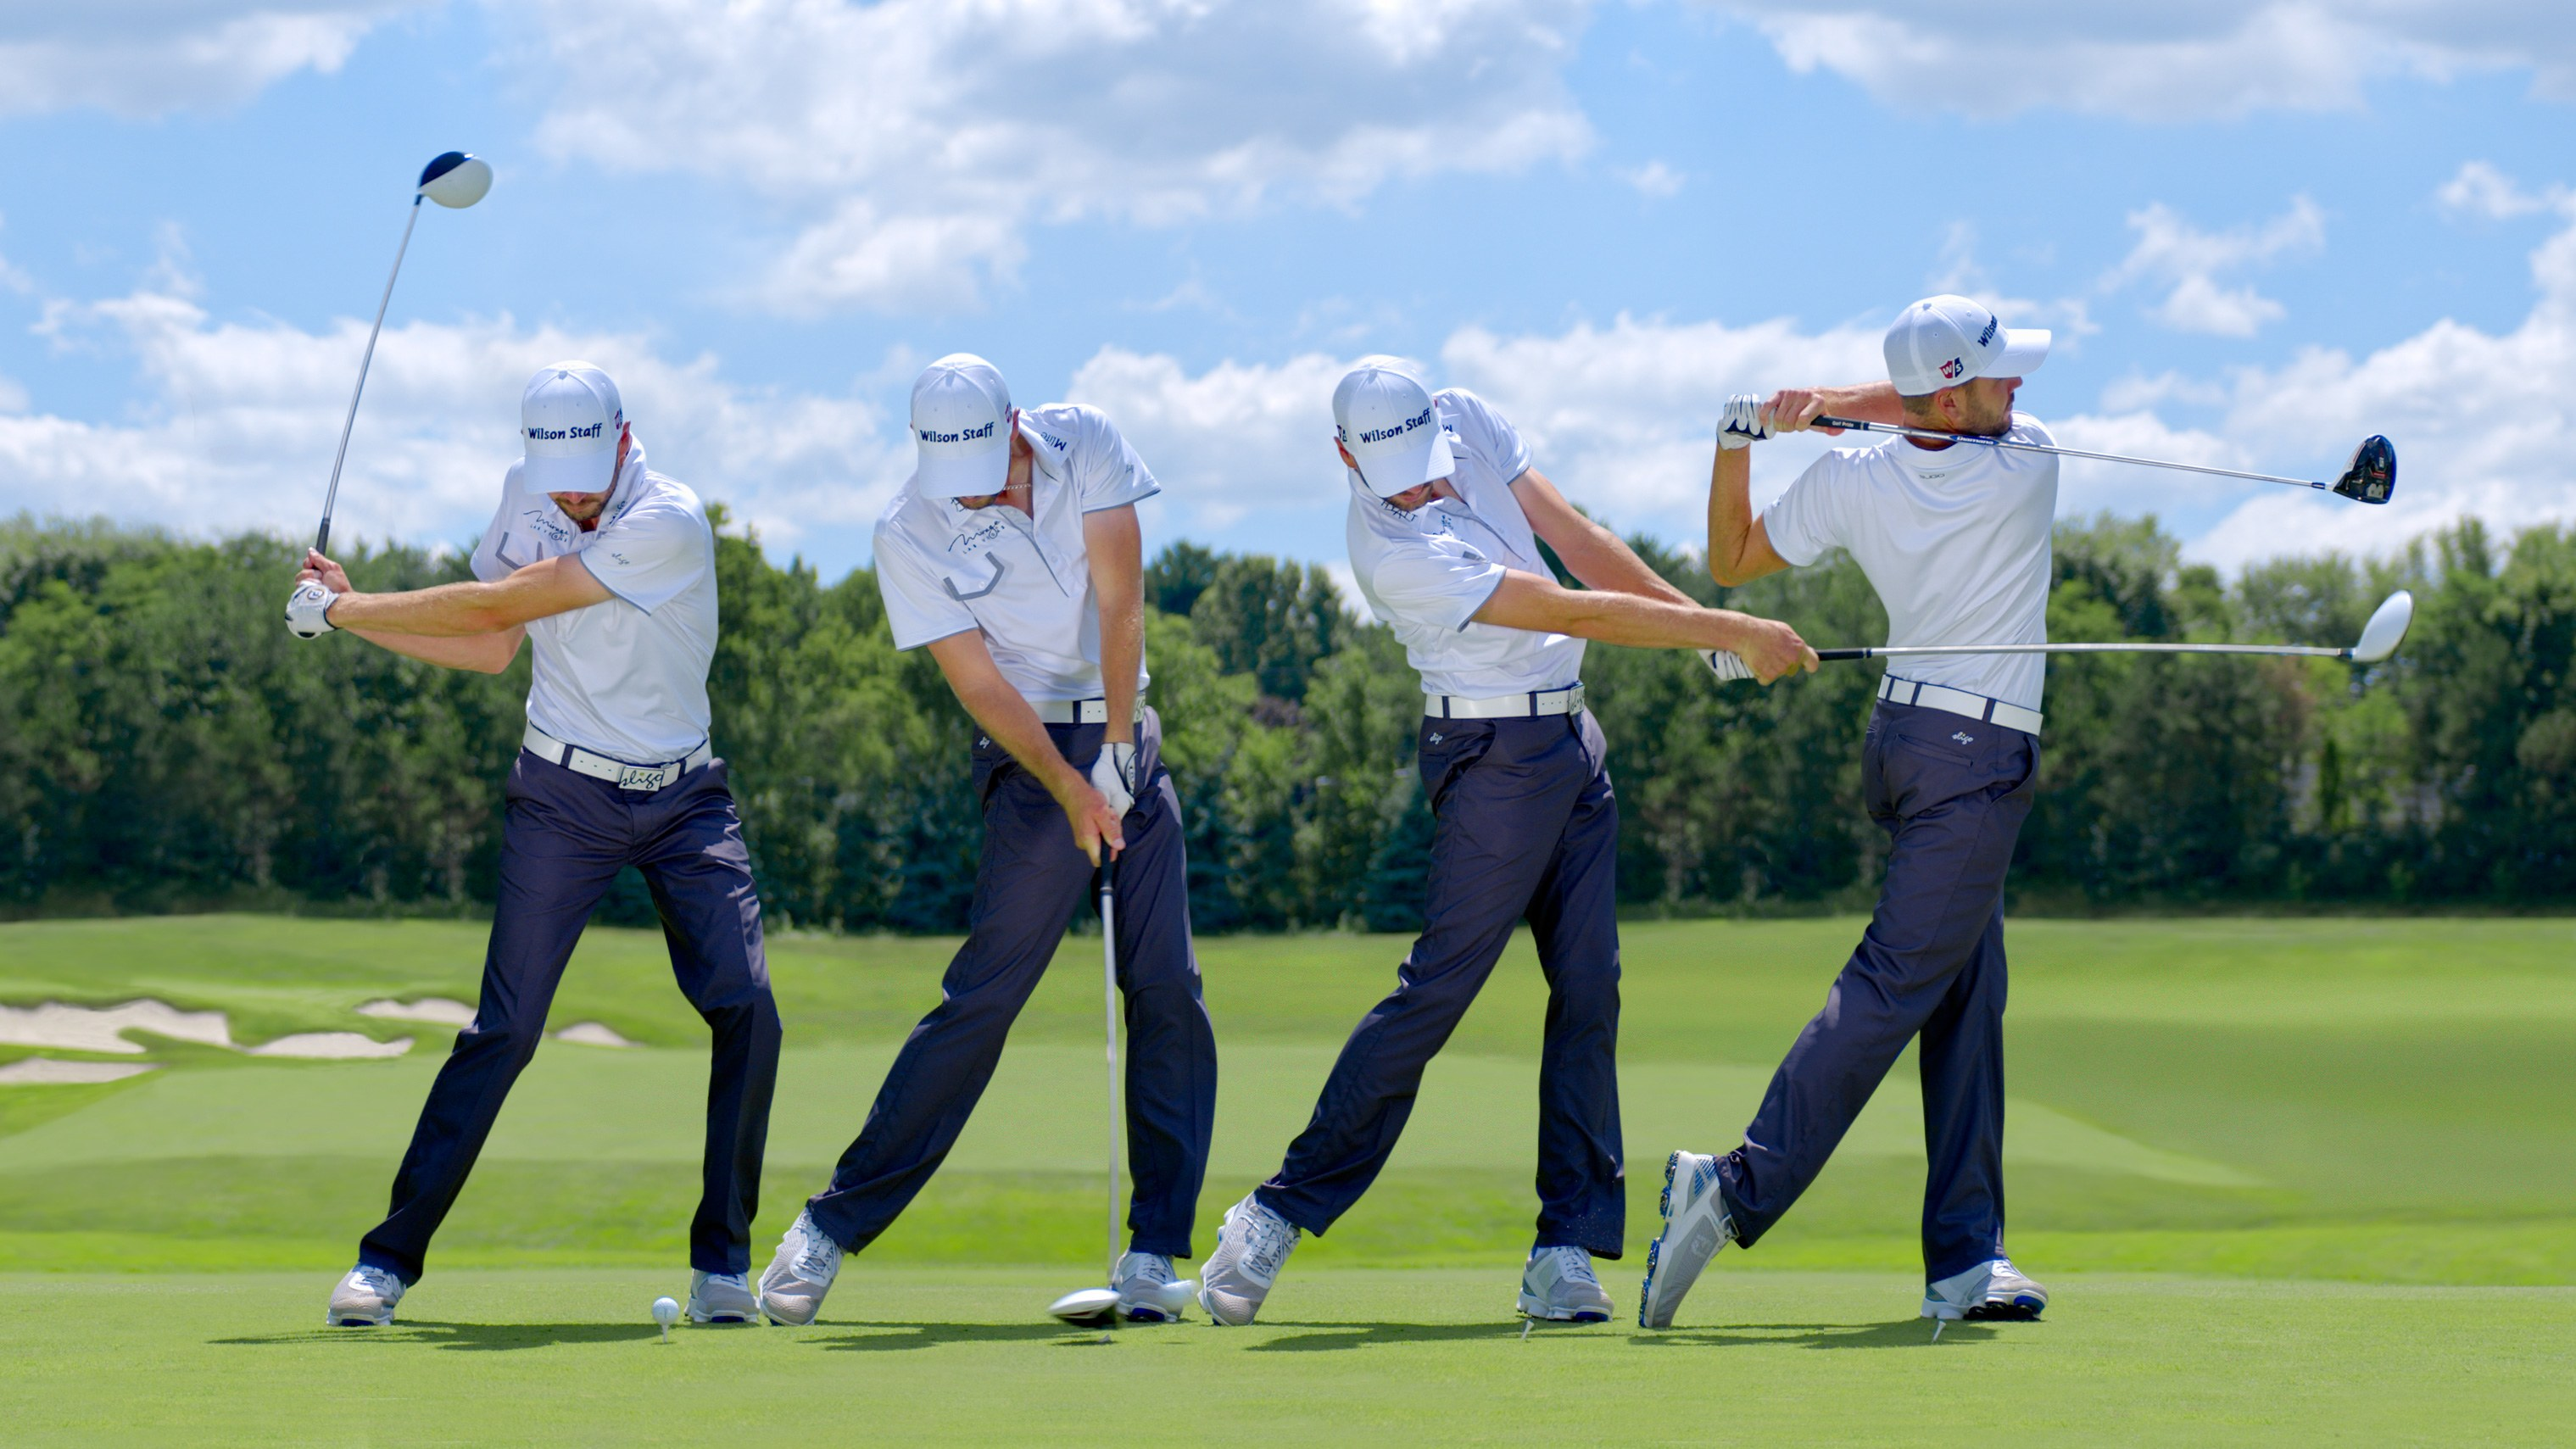 Front swing sequence